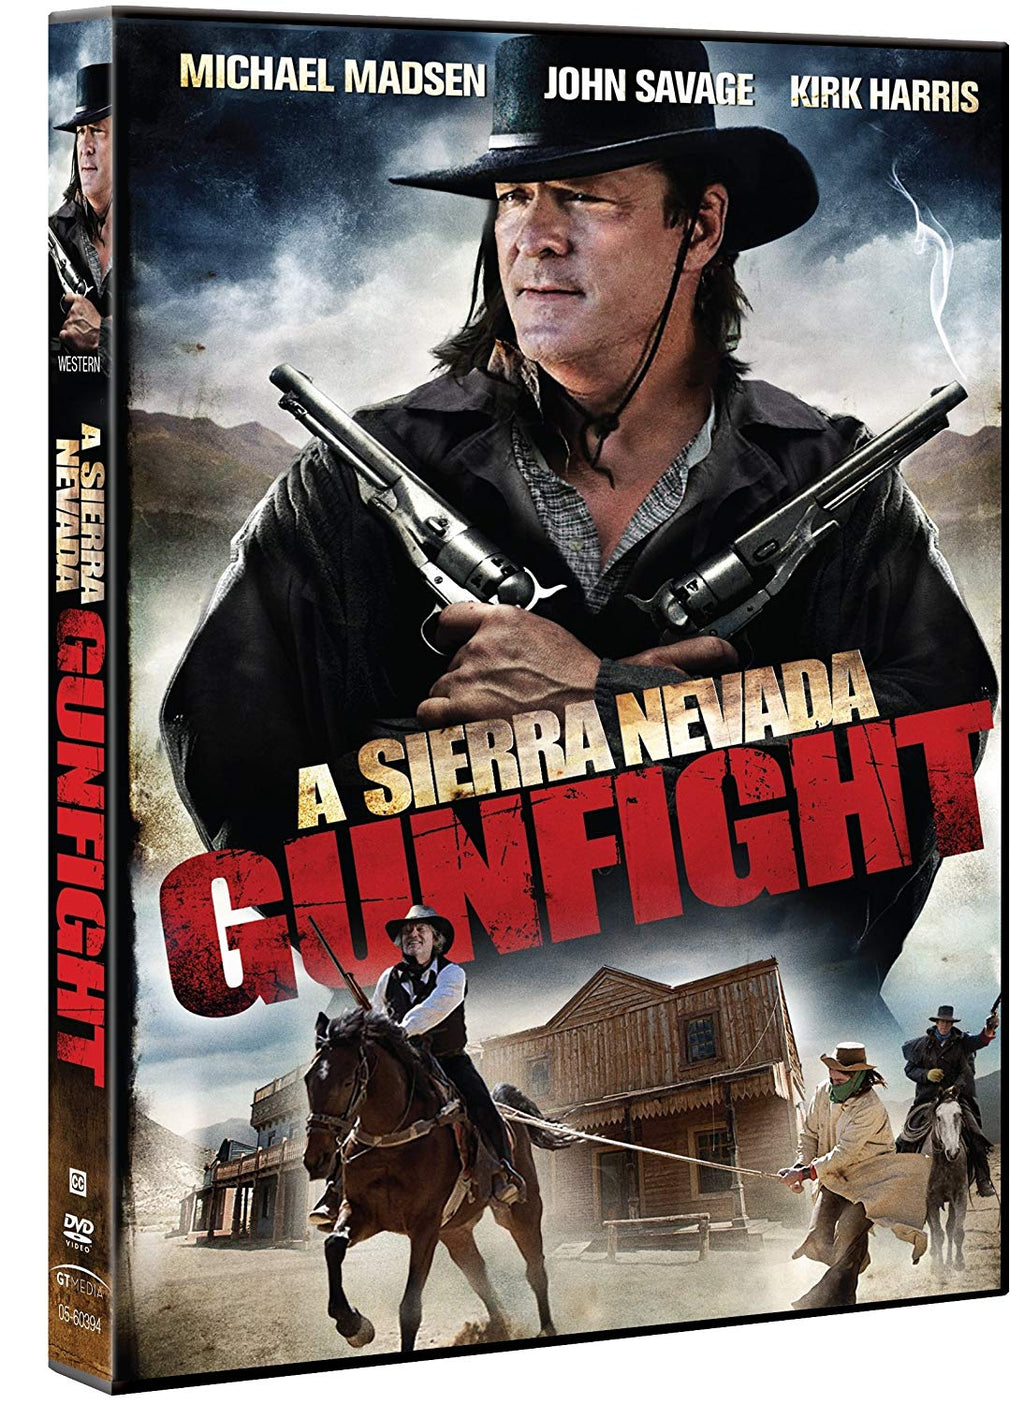 A Sierra Nevada Gunfight DVD